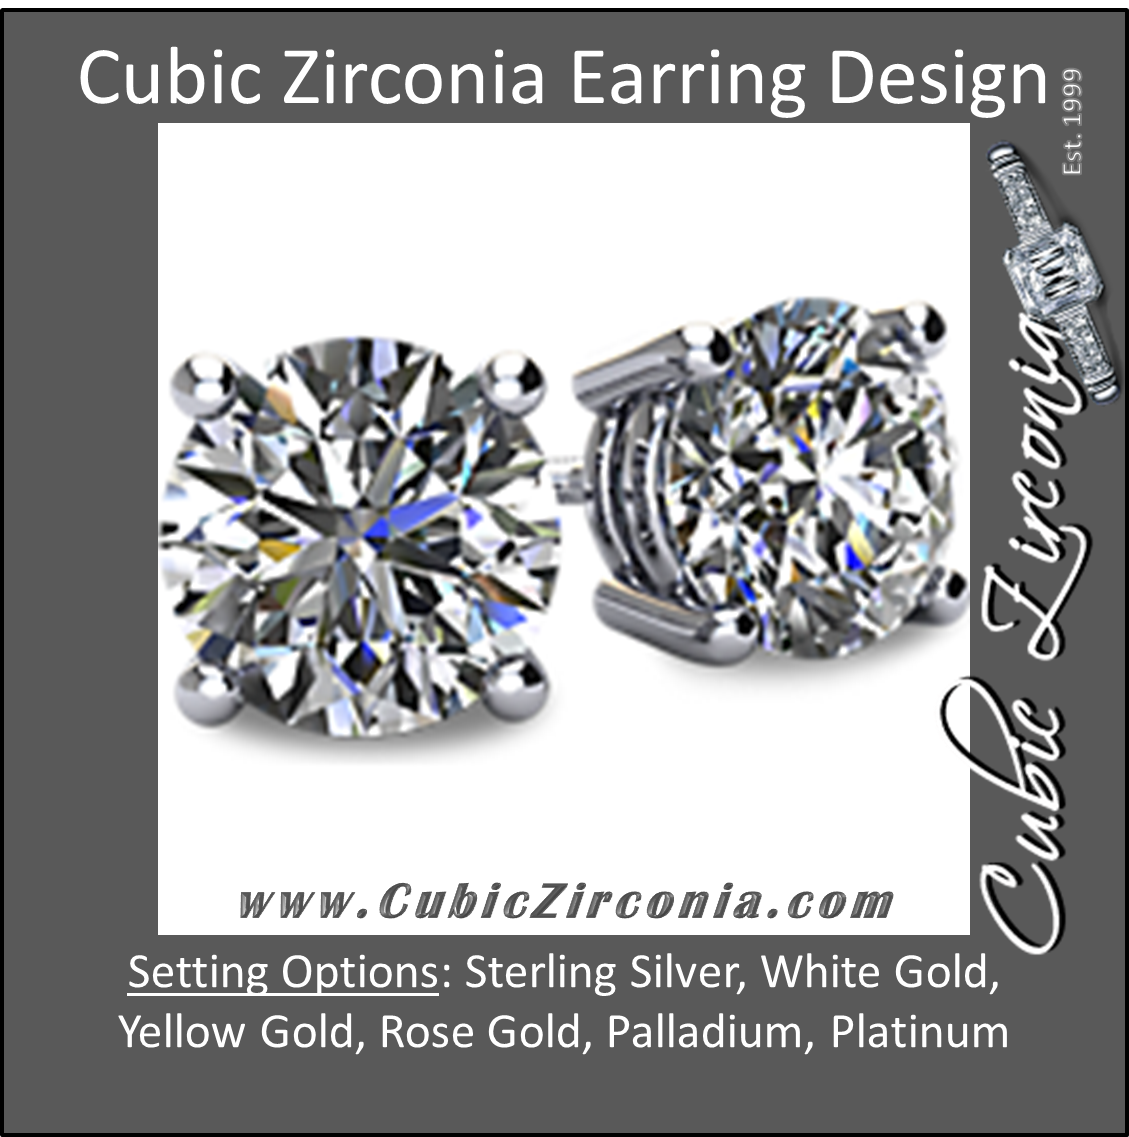 beb29af21 Cubic Zirconia Earrings- Customizable 4 Prong Round CZ Stud Earring ...